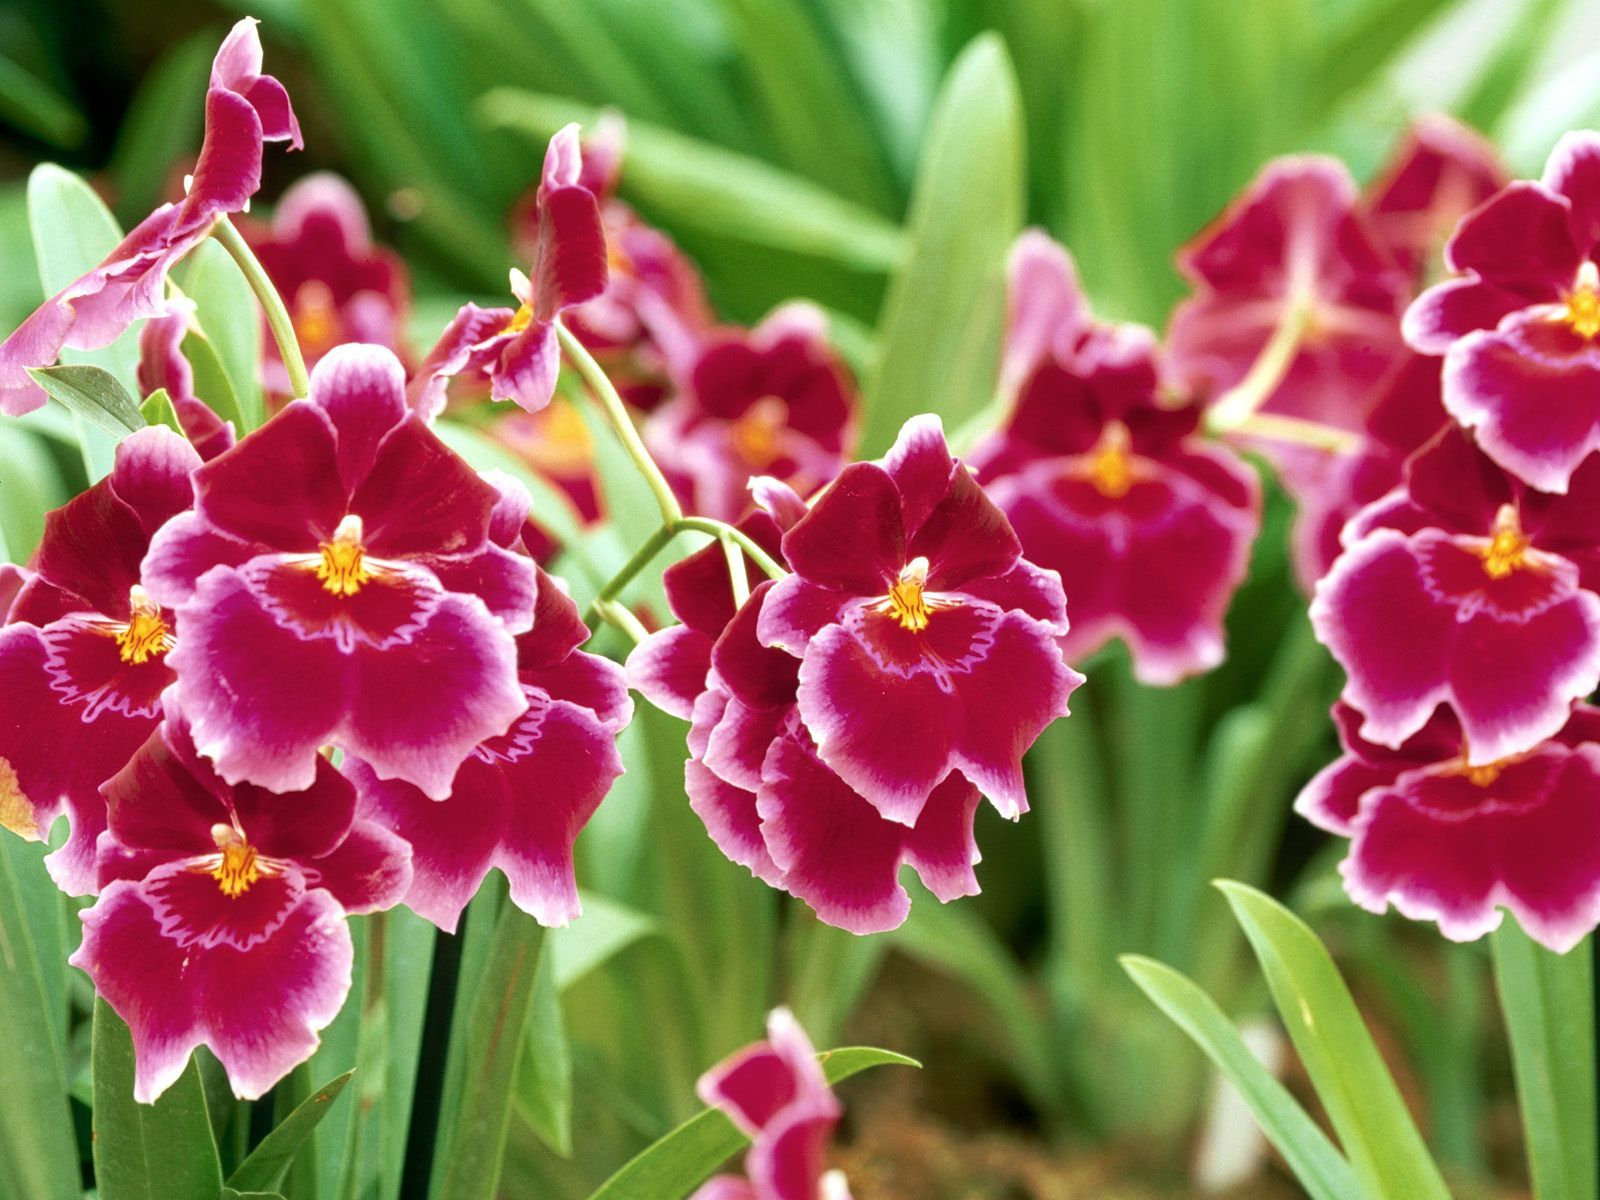 Pansy pansy orchid wallpaperfree earth wallpaper for desktop